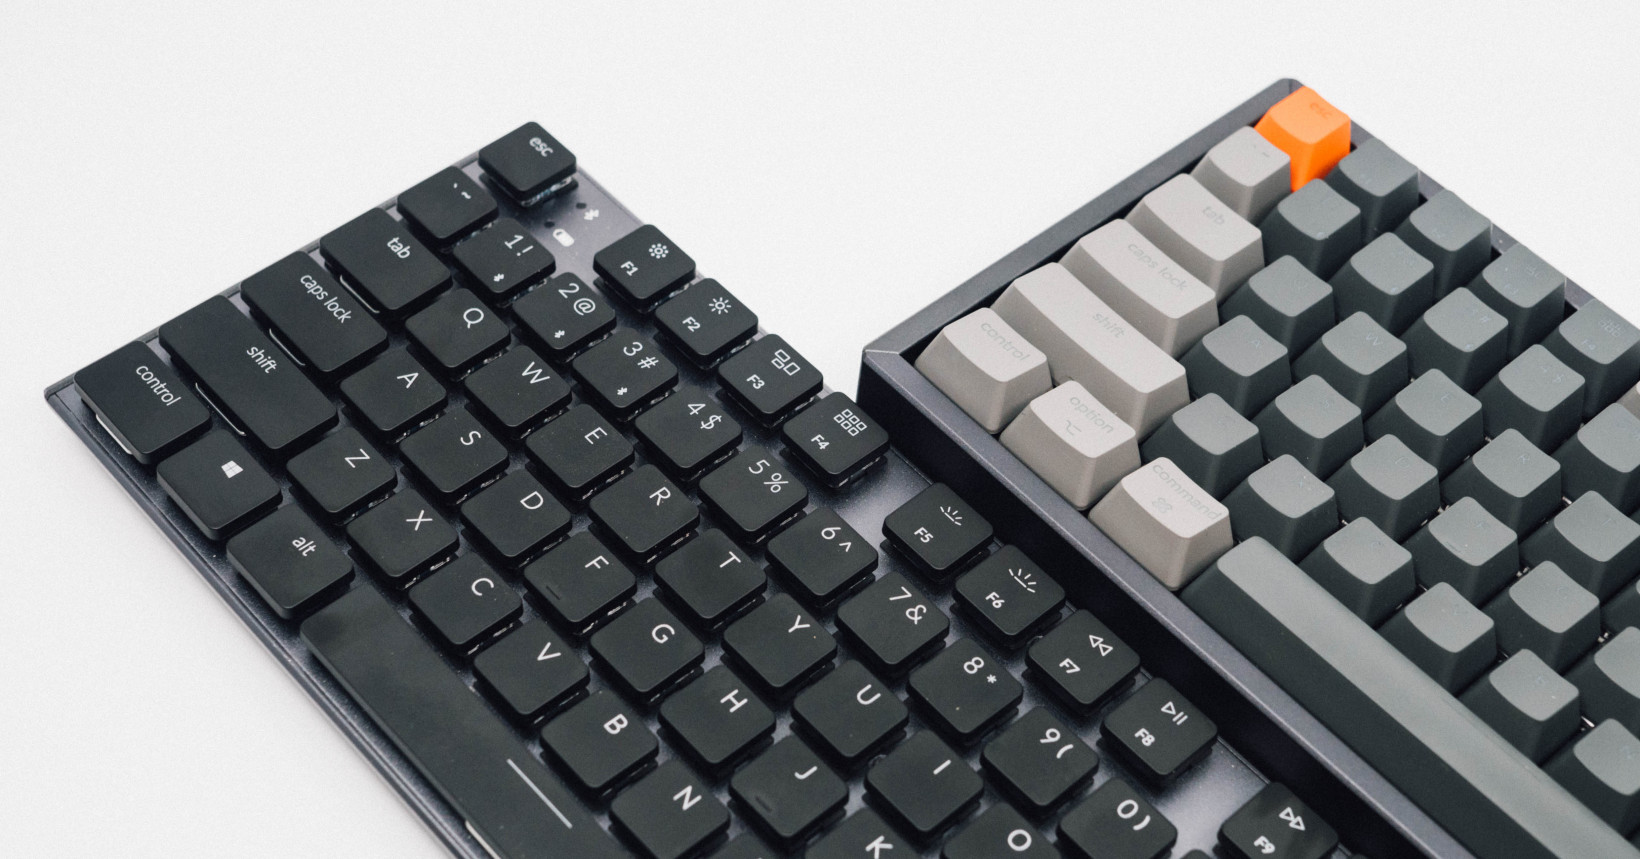 Review: The Keychron K1 and K2 are the wireless mechanical keyboards I've been waiting for